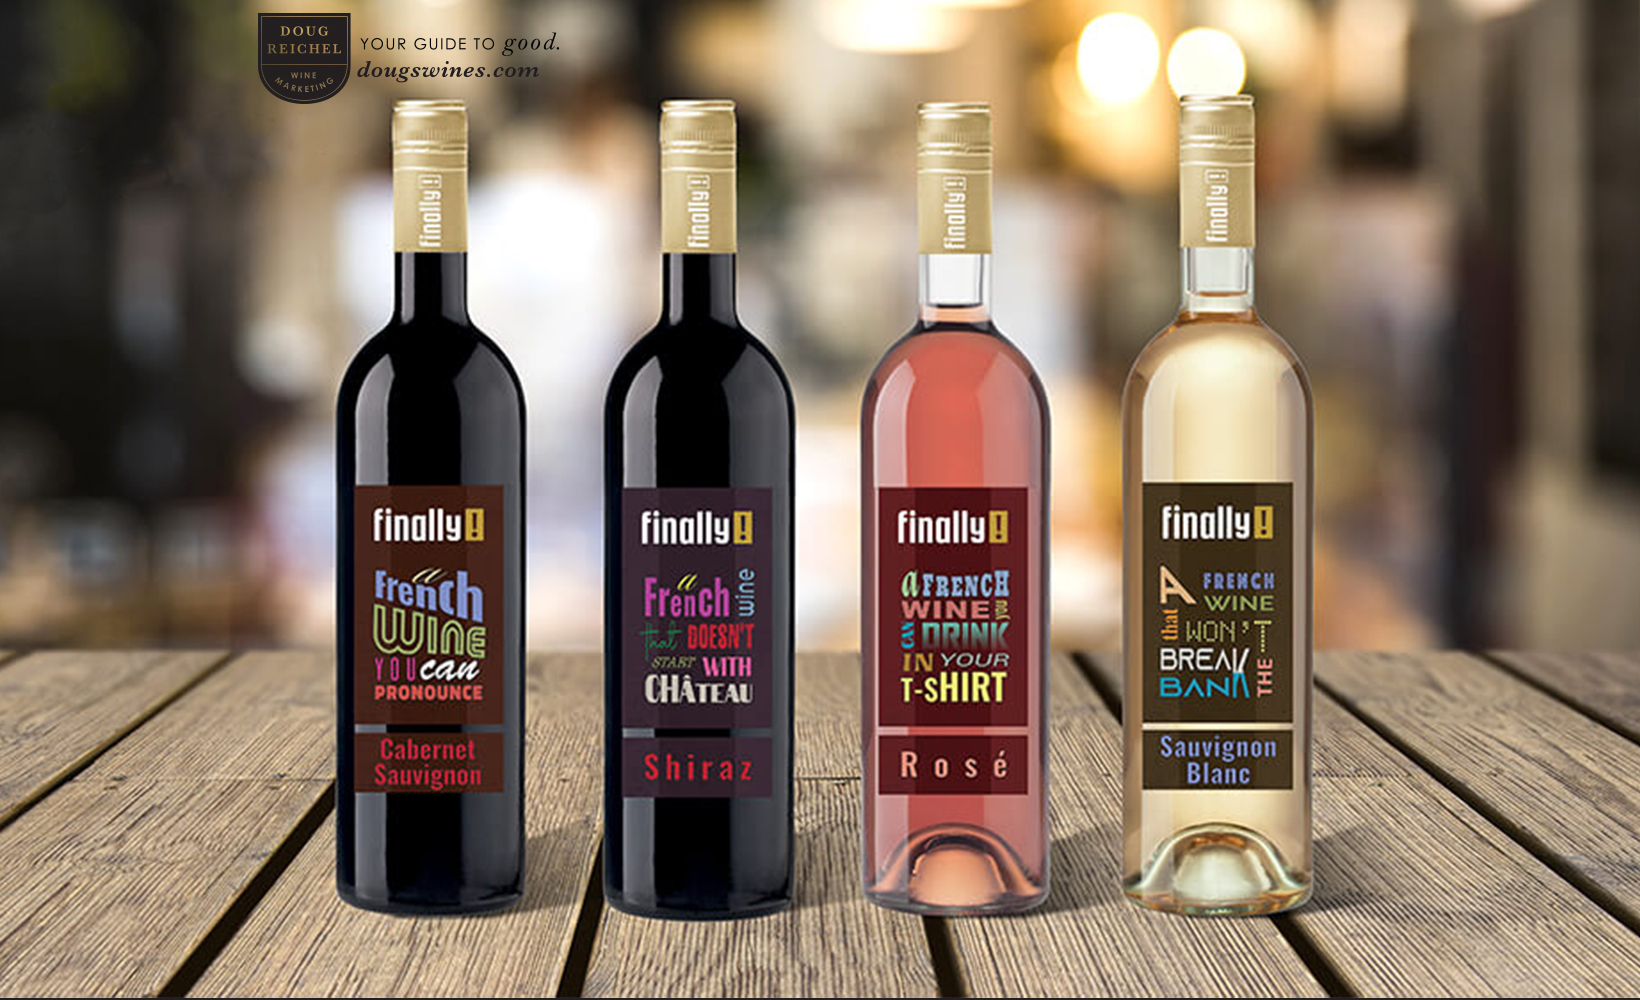 https://winesandbrands.com/